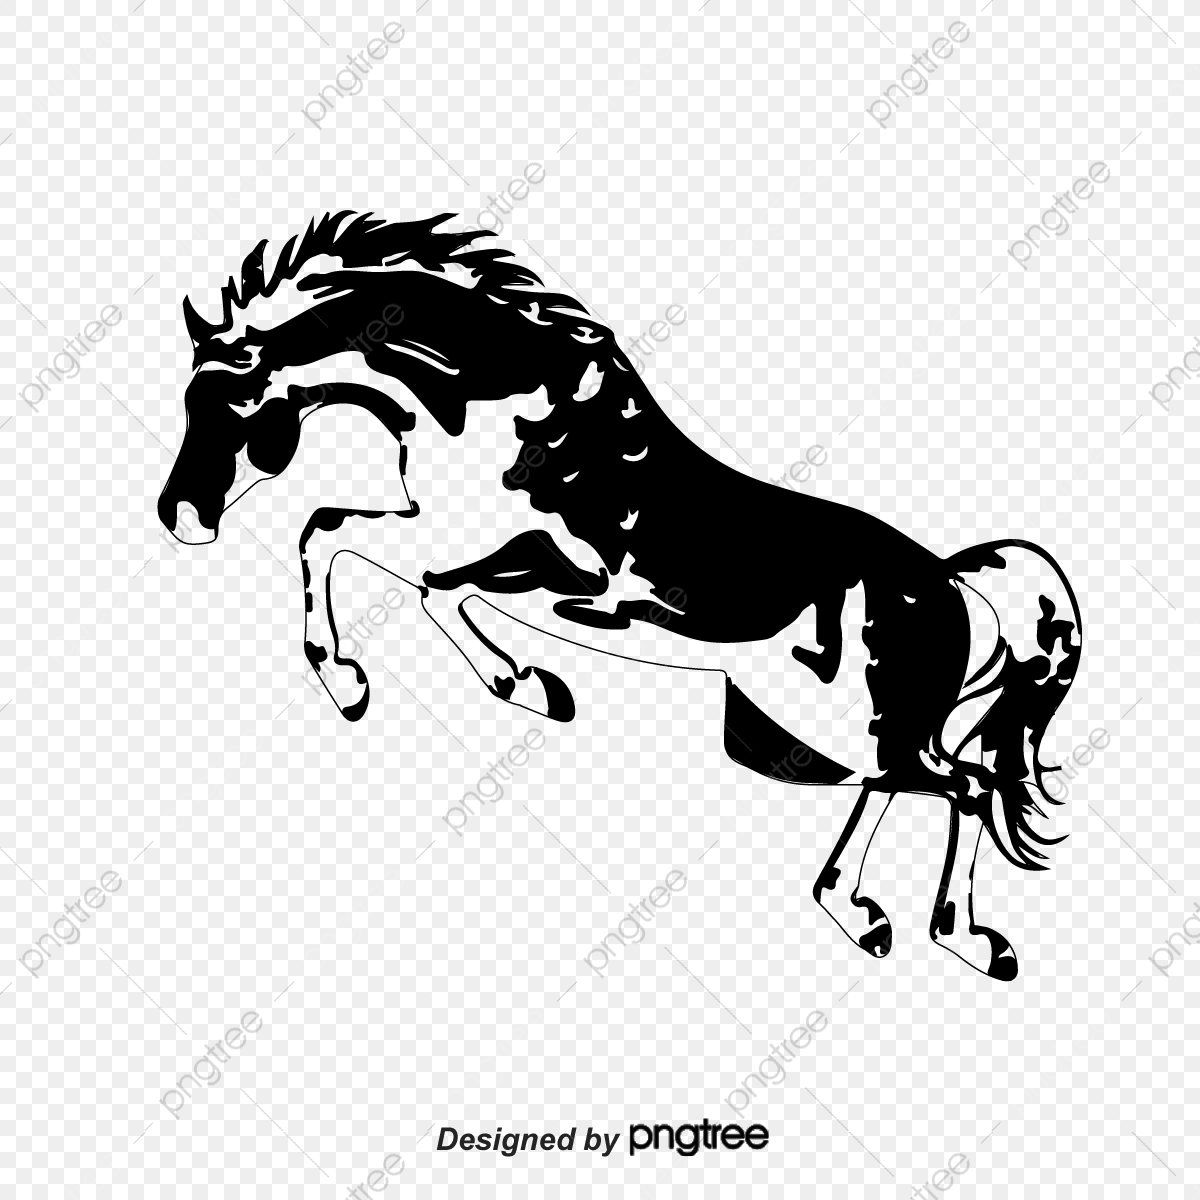 Sketch Horse Horse Clipart Sketch Horse Png And Vector With Transparent Background For Free Download